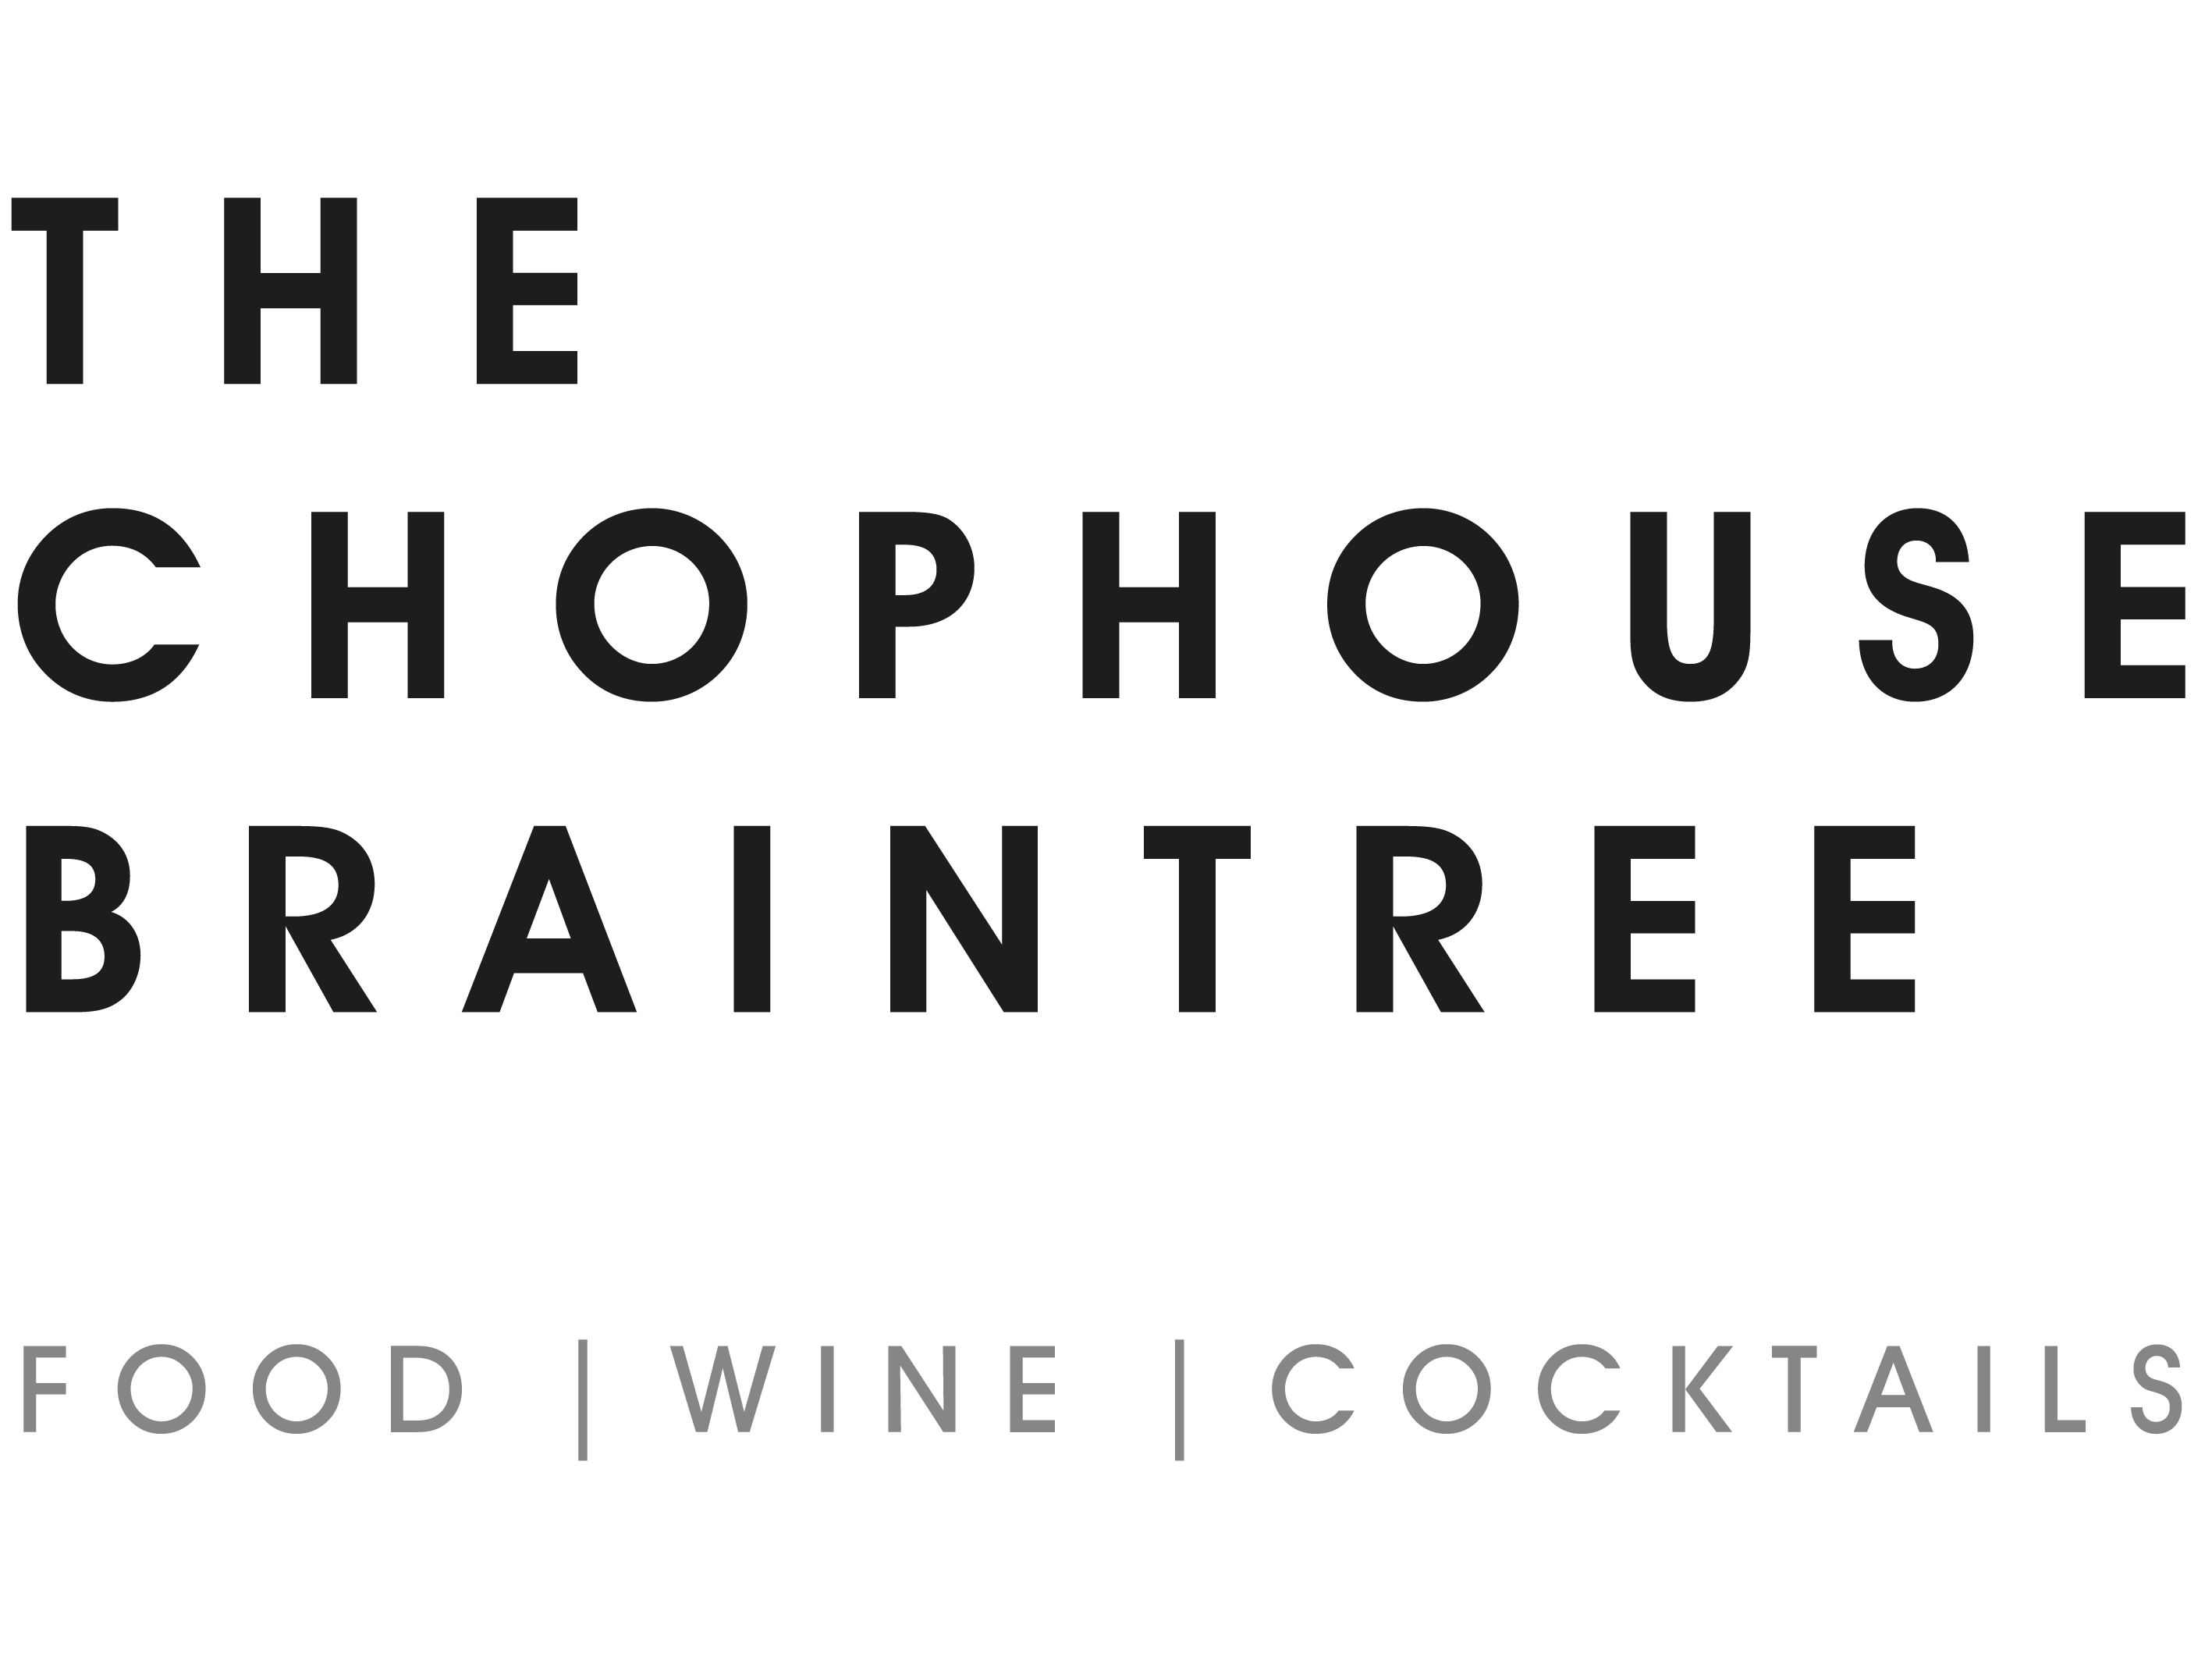 The Chophouse Braintree